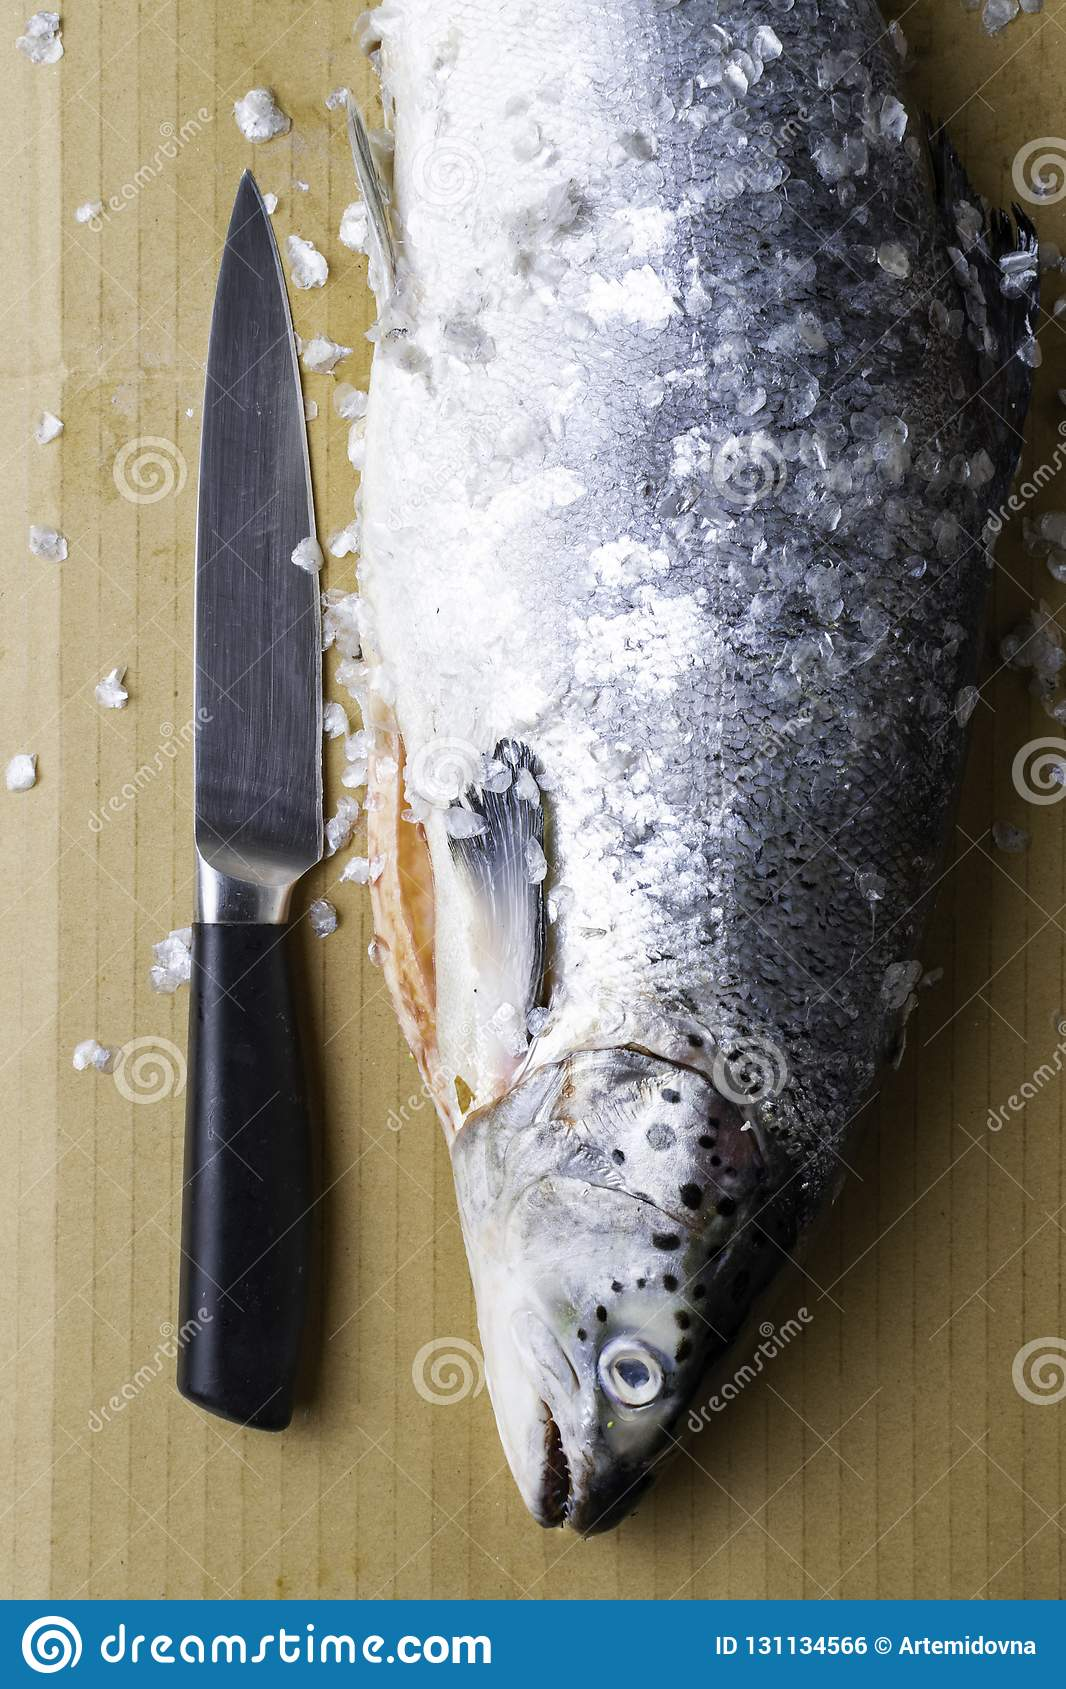 Large Fresh Salmon, Knife And Scissors  Preparation For